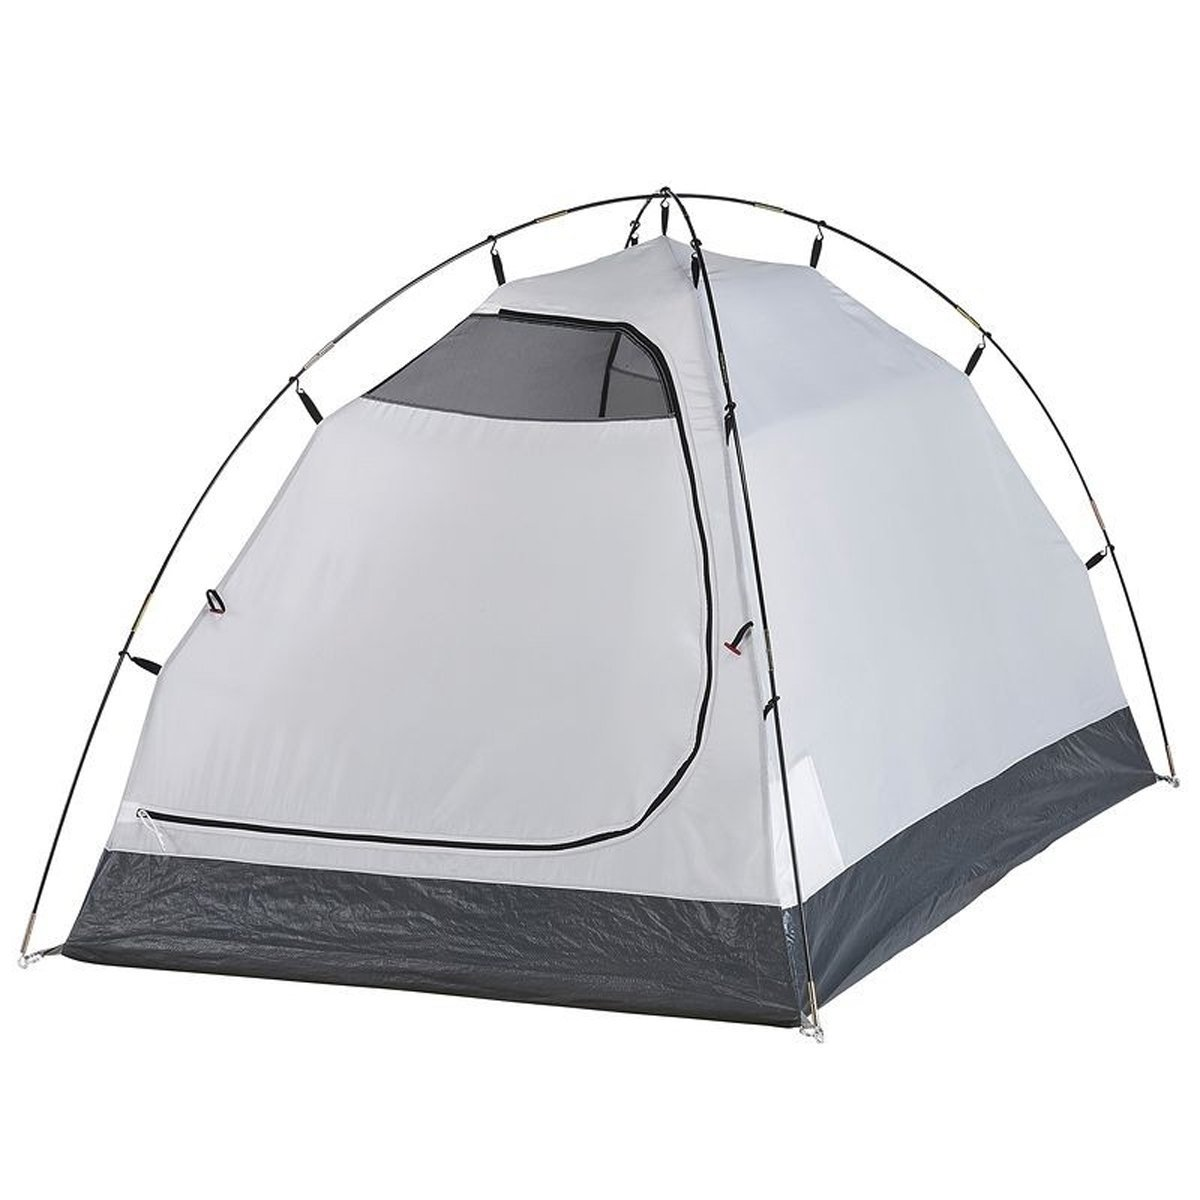 Camping Tent – 2 Person